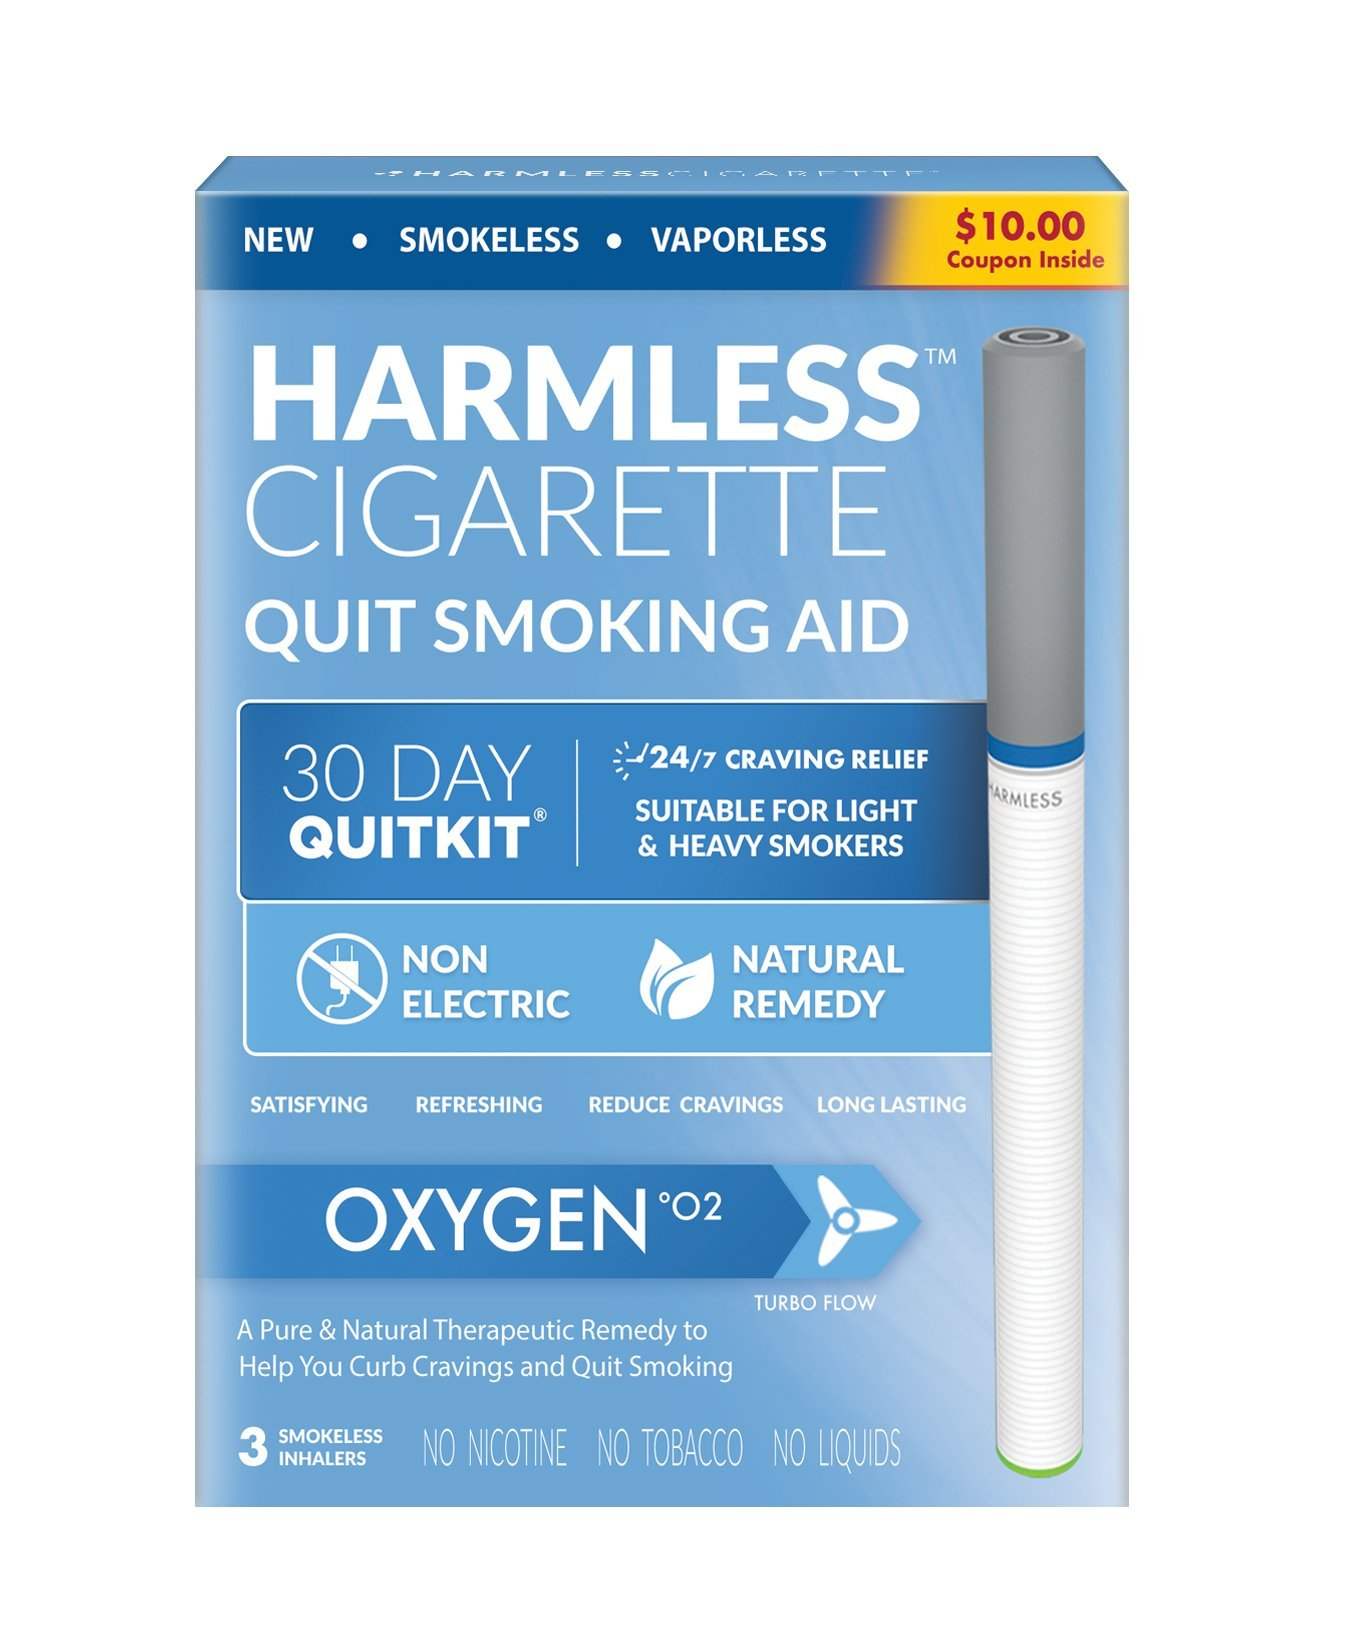 New / 30 Day Quit Kit/Natural & Therapeutic Quit Smoking Solution/Stop Smoking Remedy to Help Quit & Reduce Cravings. (Oxygen, 30 Day Quit Kit)